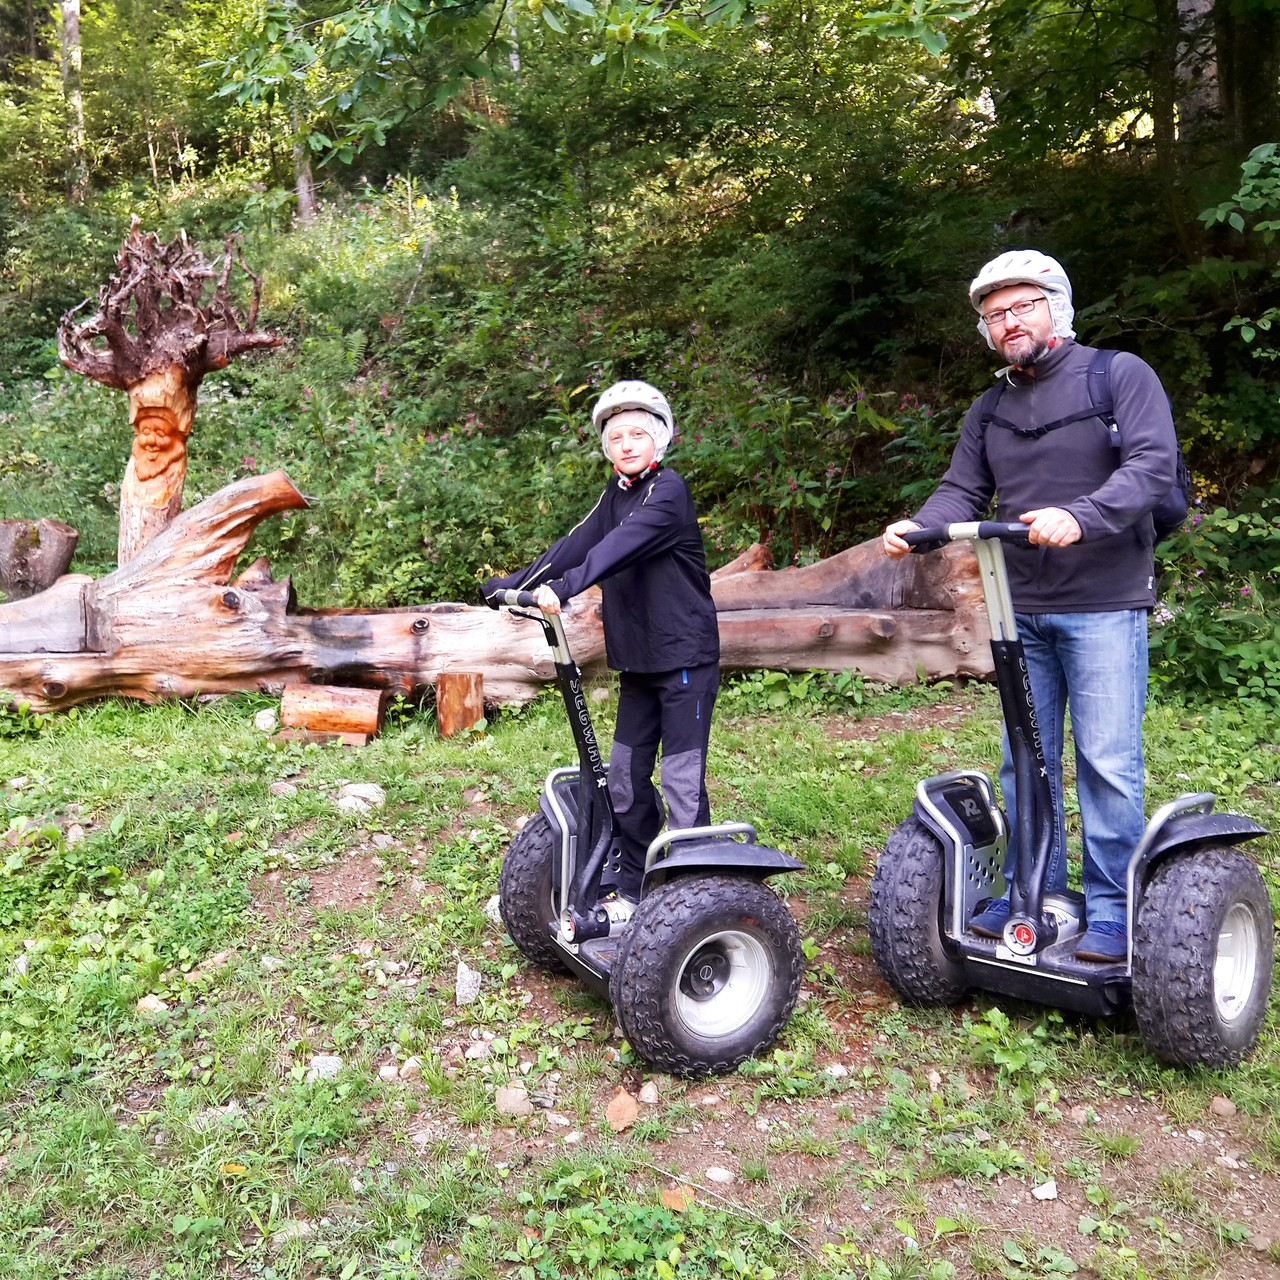 FUN MOVING GYROPODE SEGWAY EN ALSACE - vallée de la Doller, Masevaux